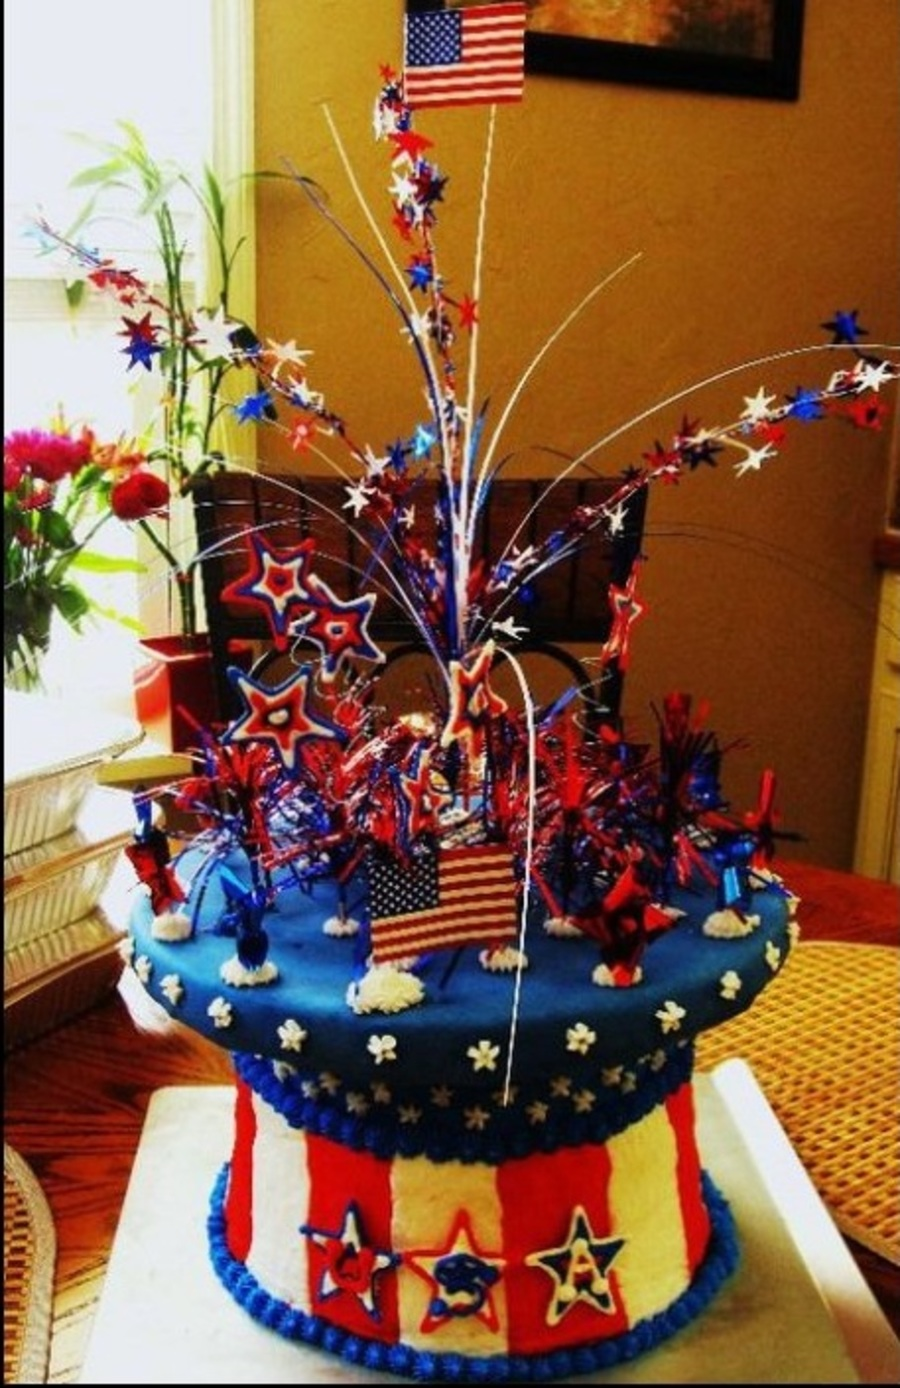 Top Hat Cake For The 4Th on Cake Central